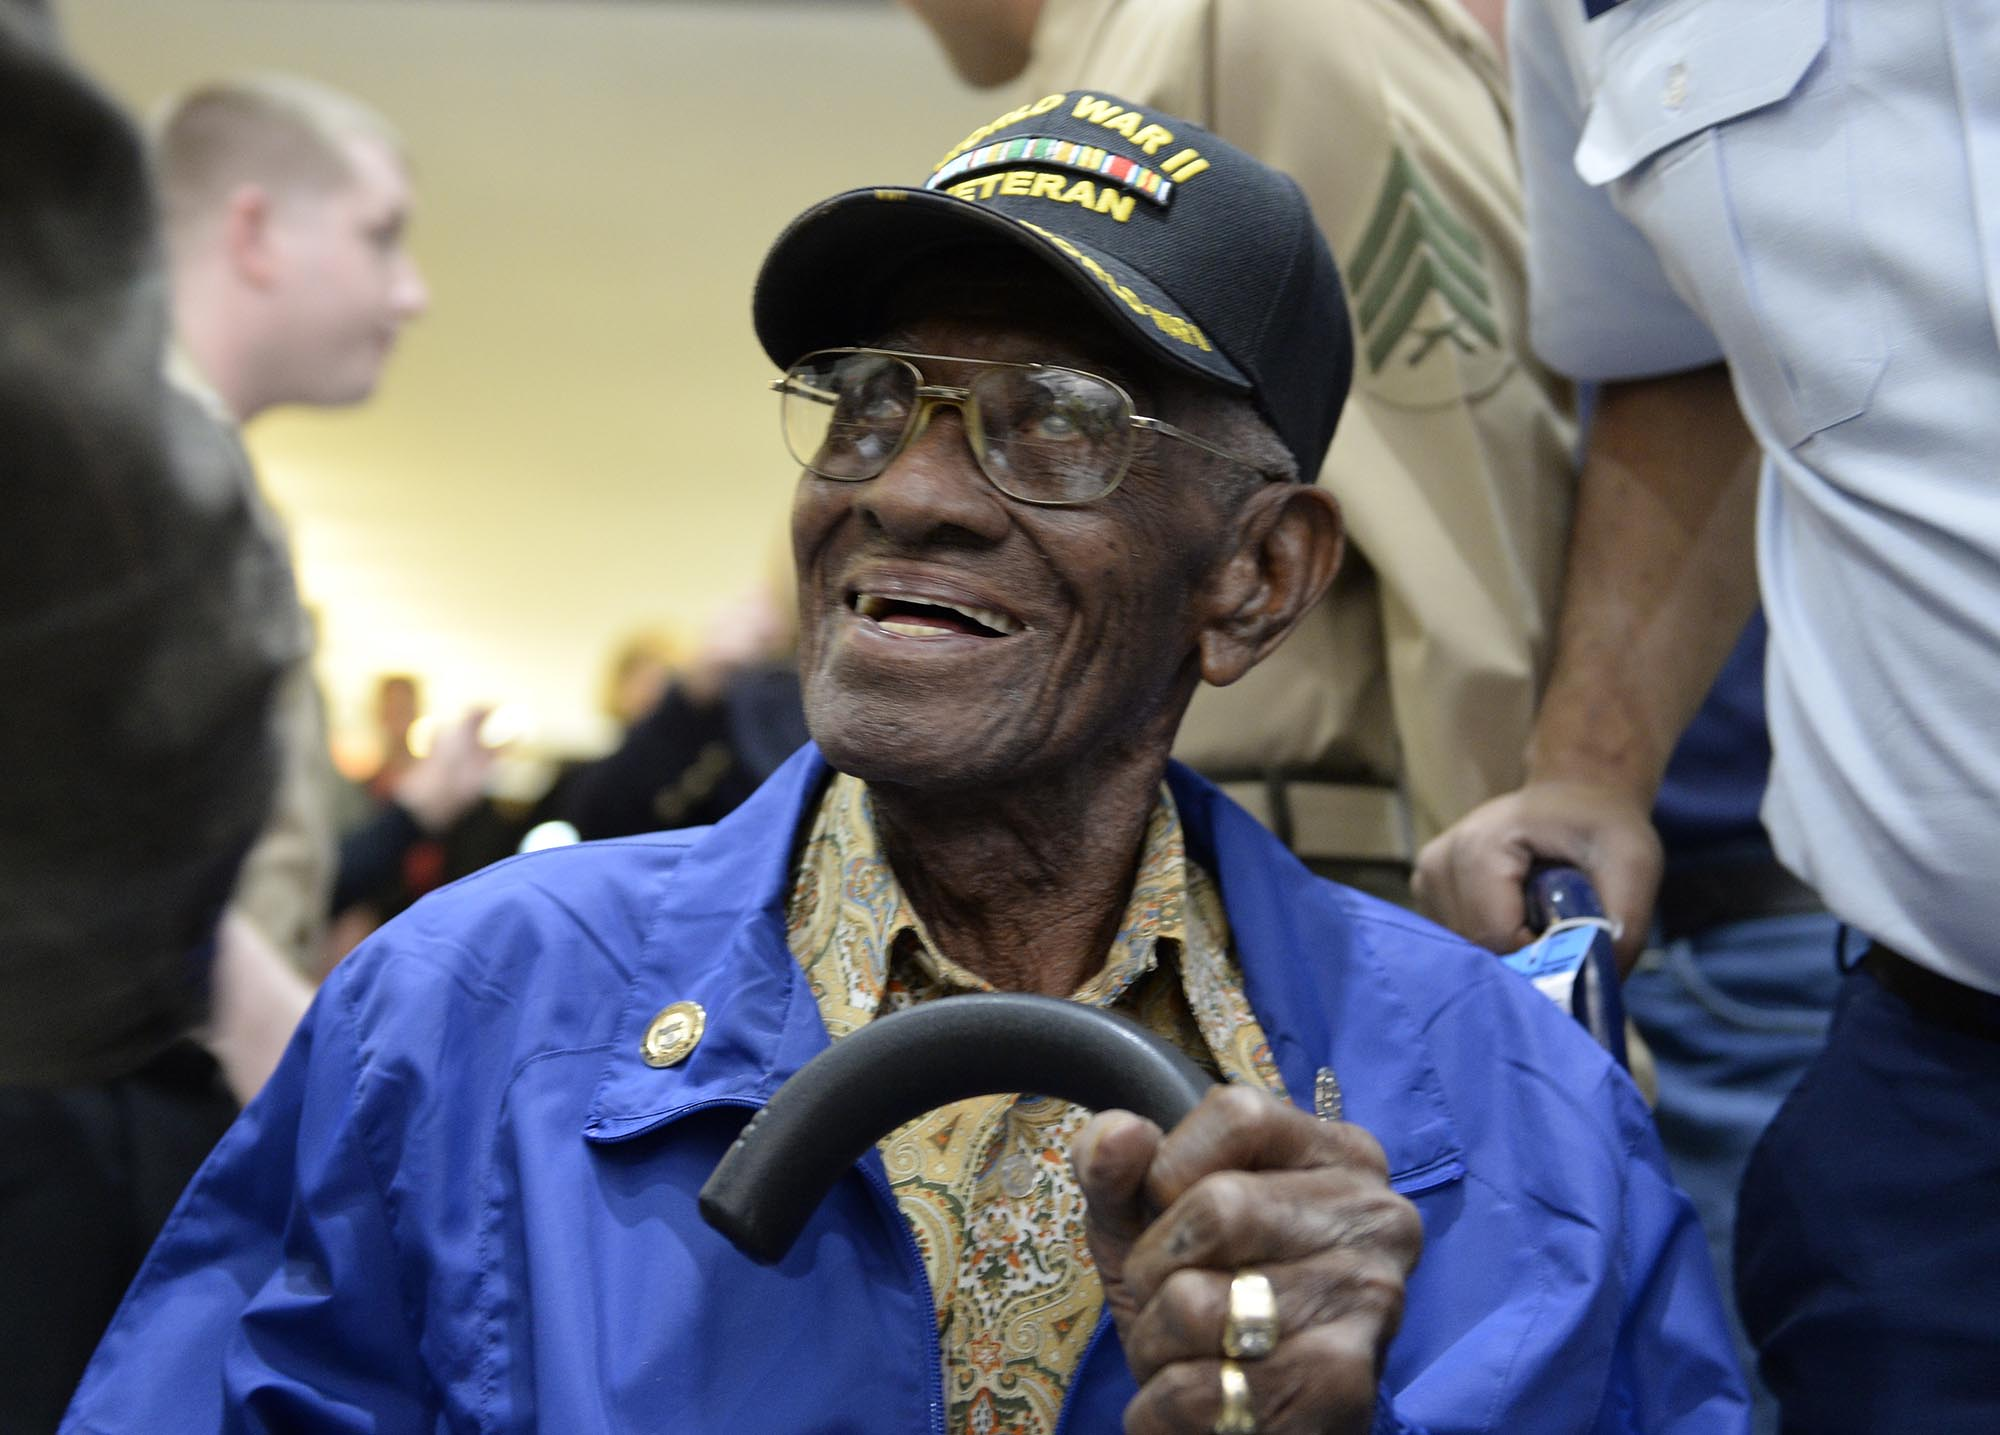 107-year-old WWII vet to meet President Obama